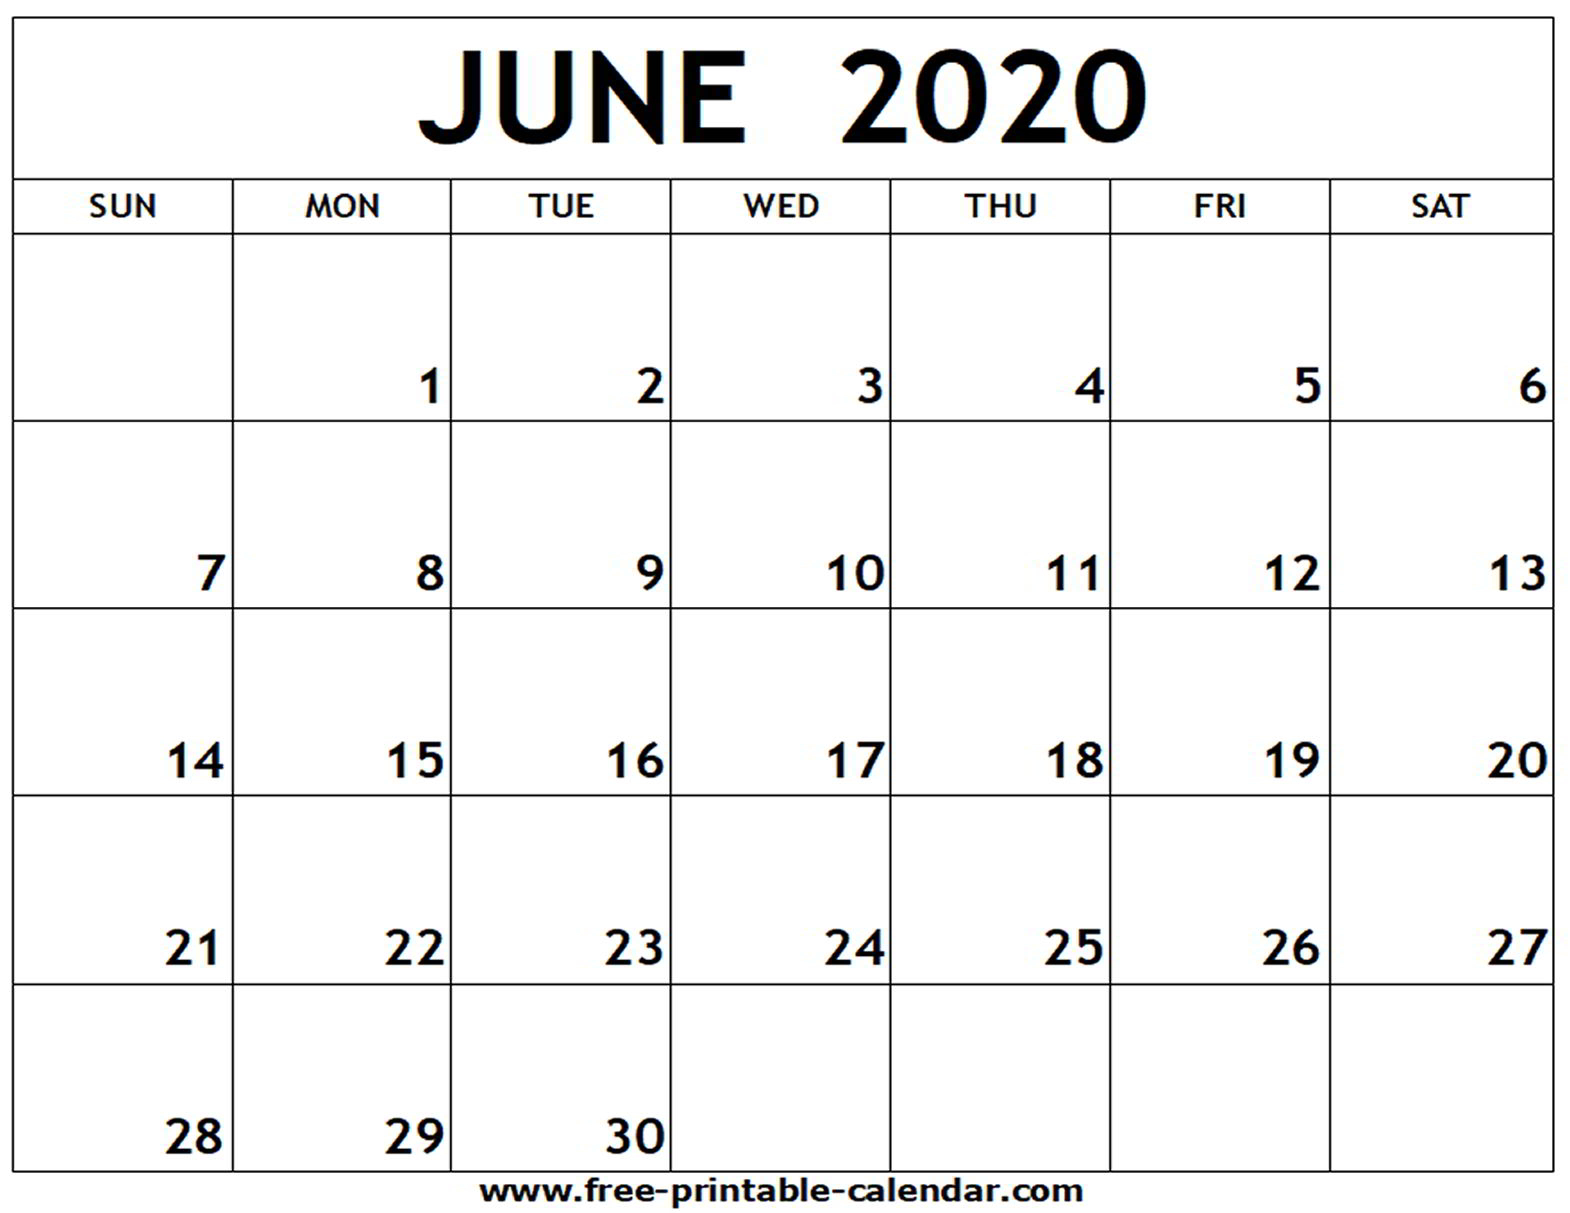 Blank Monthly Calendar July 2020 - Wpa.wpart.co